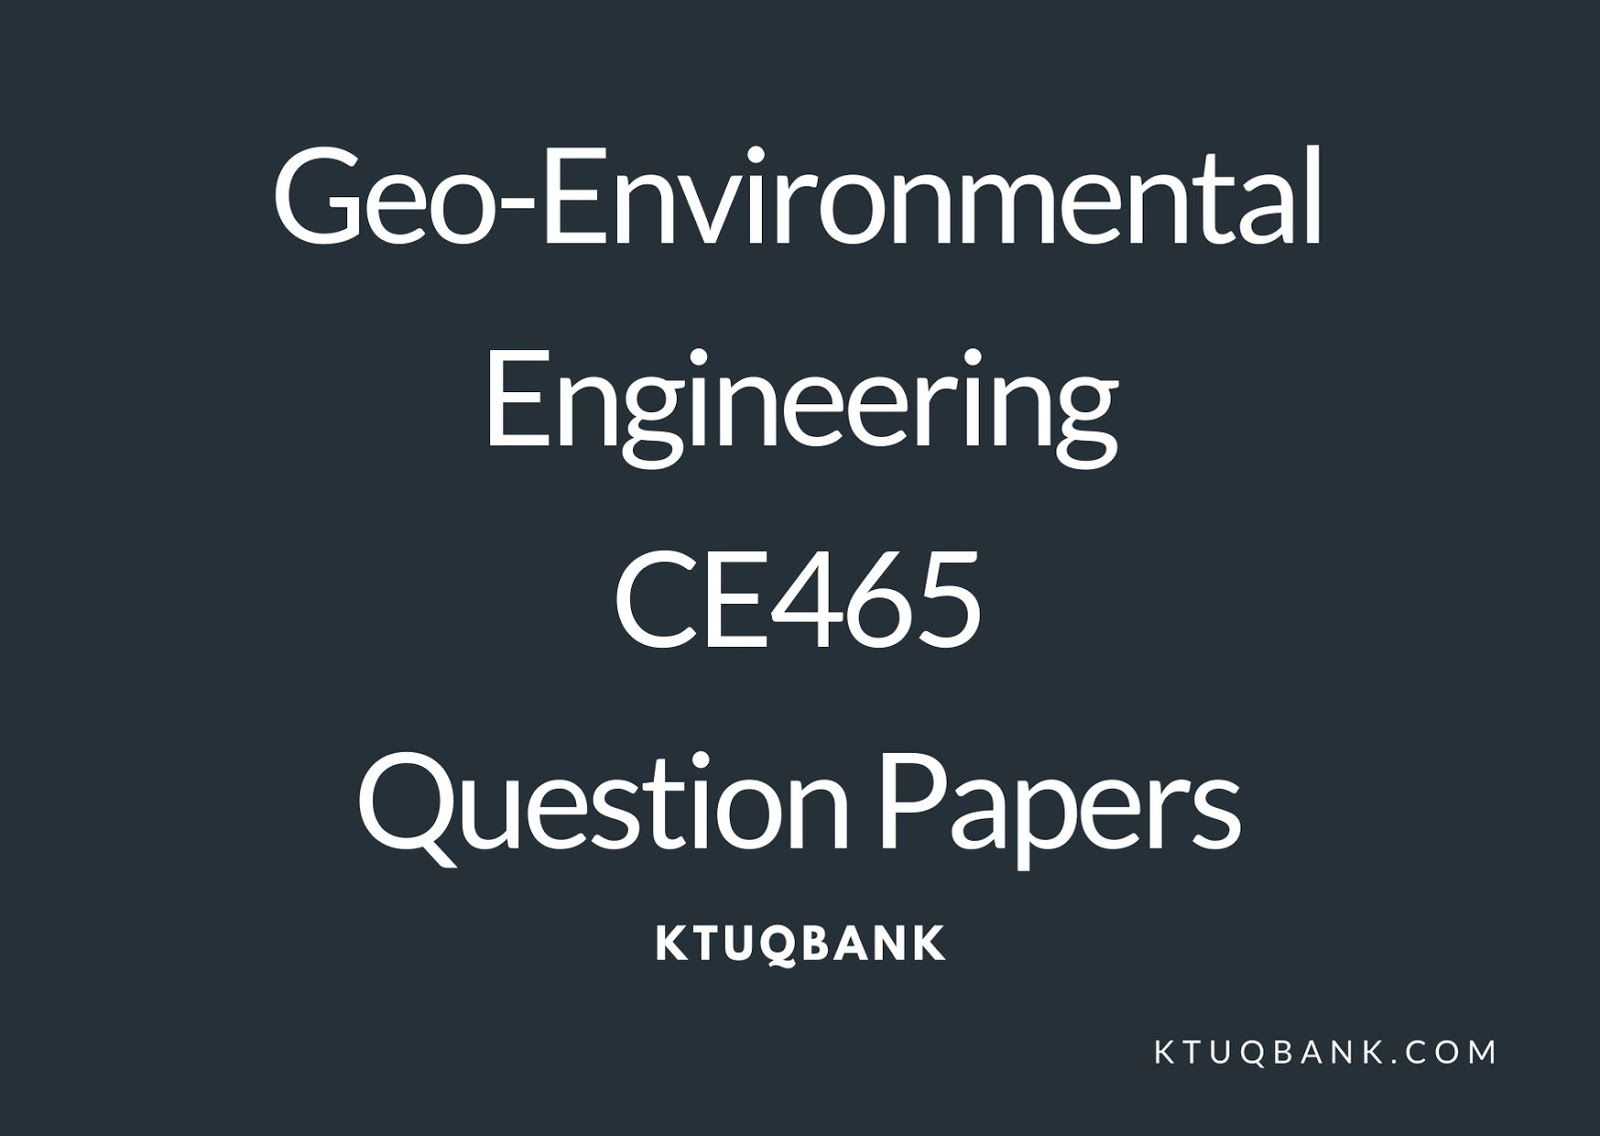 Geo-Environmental Engineering | CE465 | Question Papers (2015 batch)